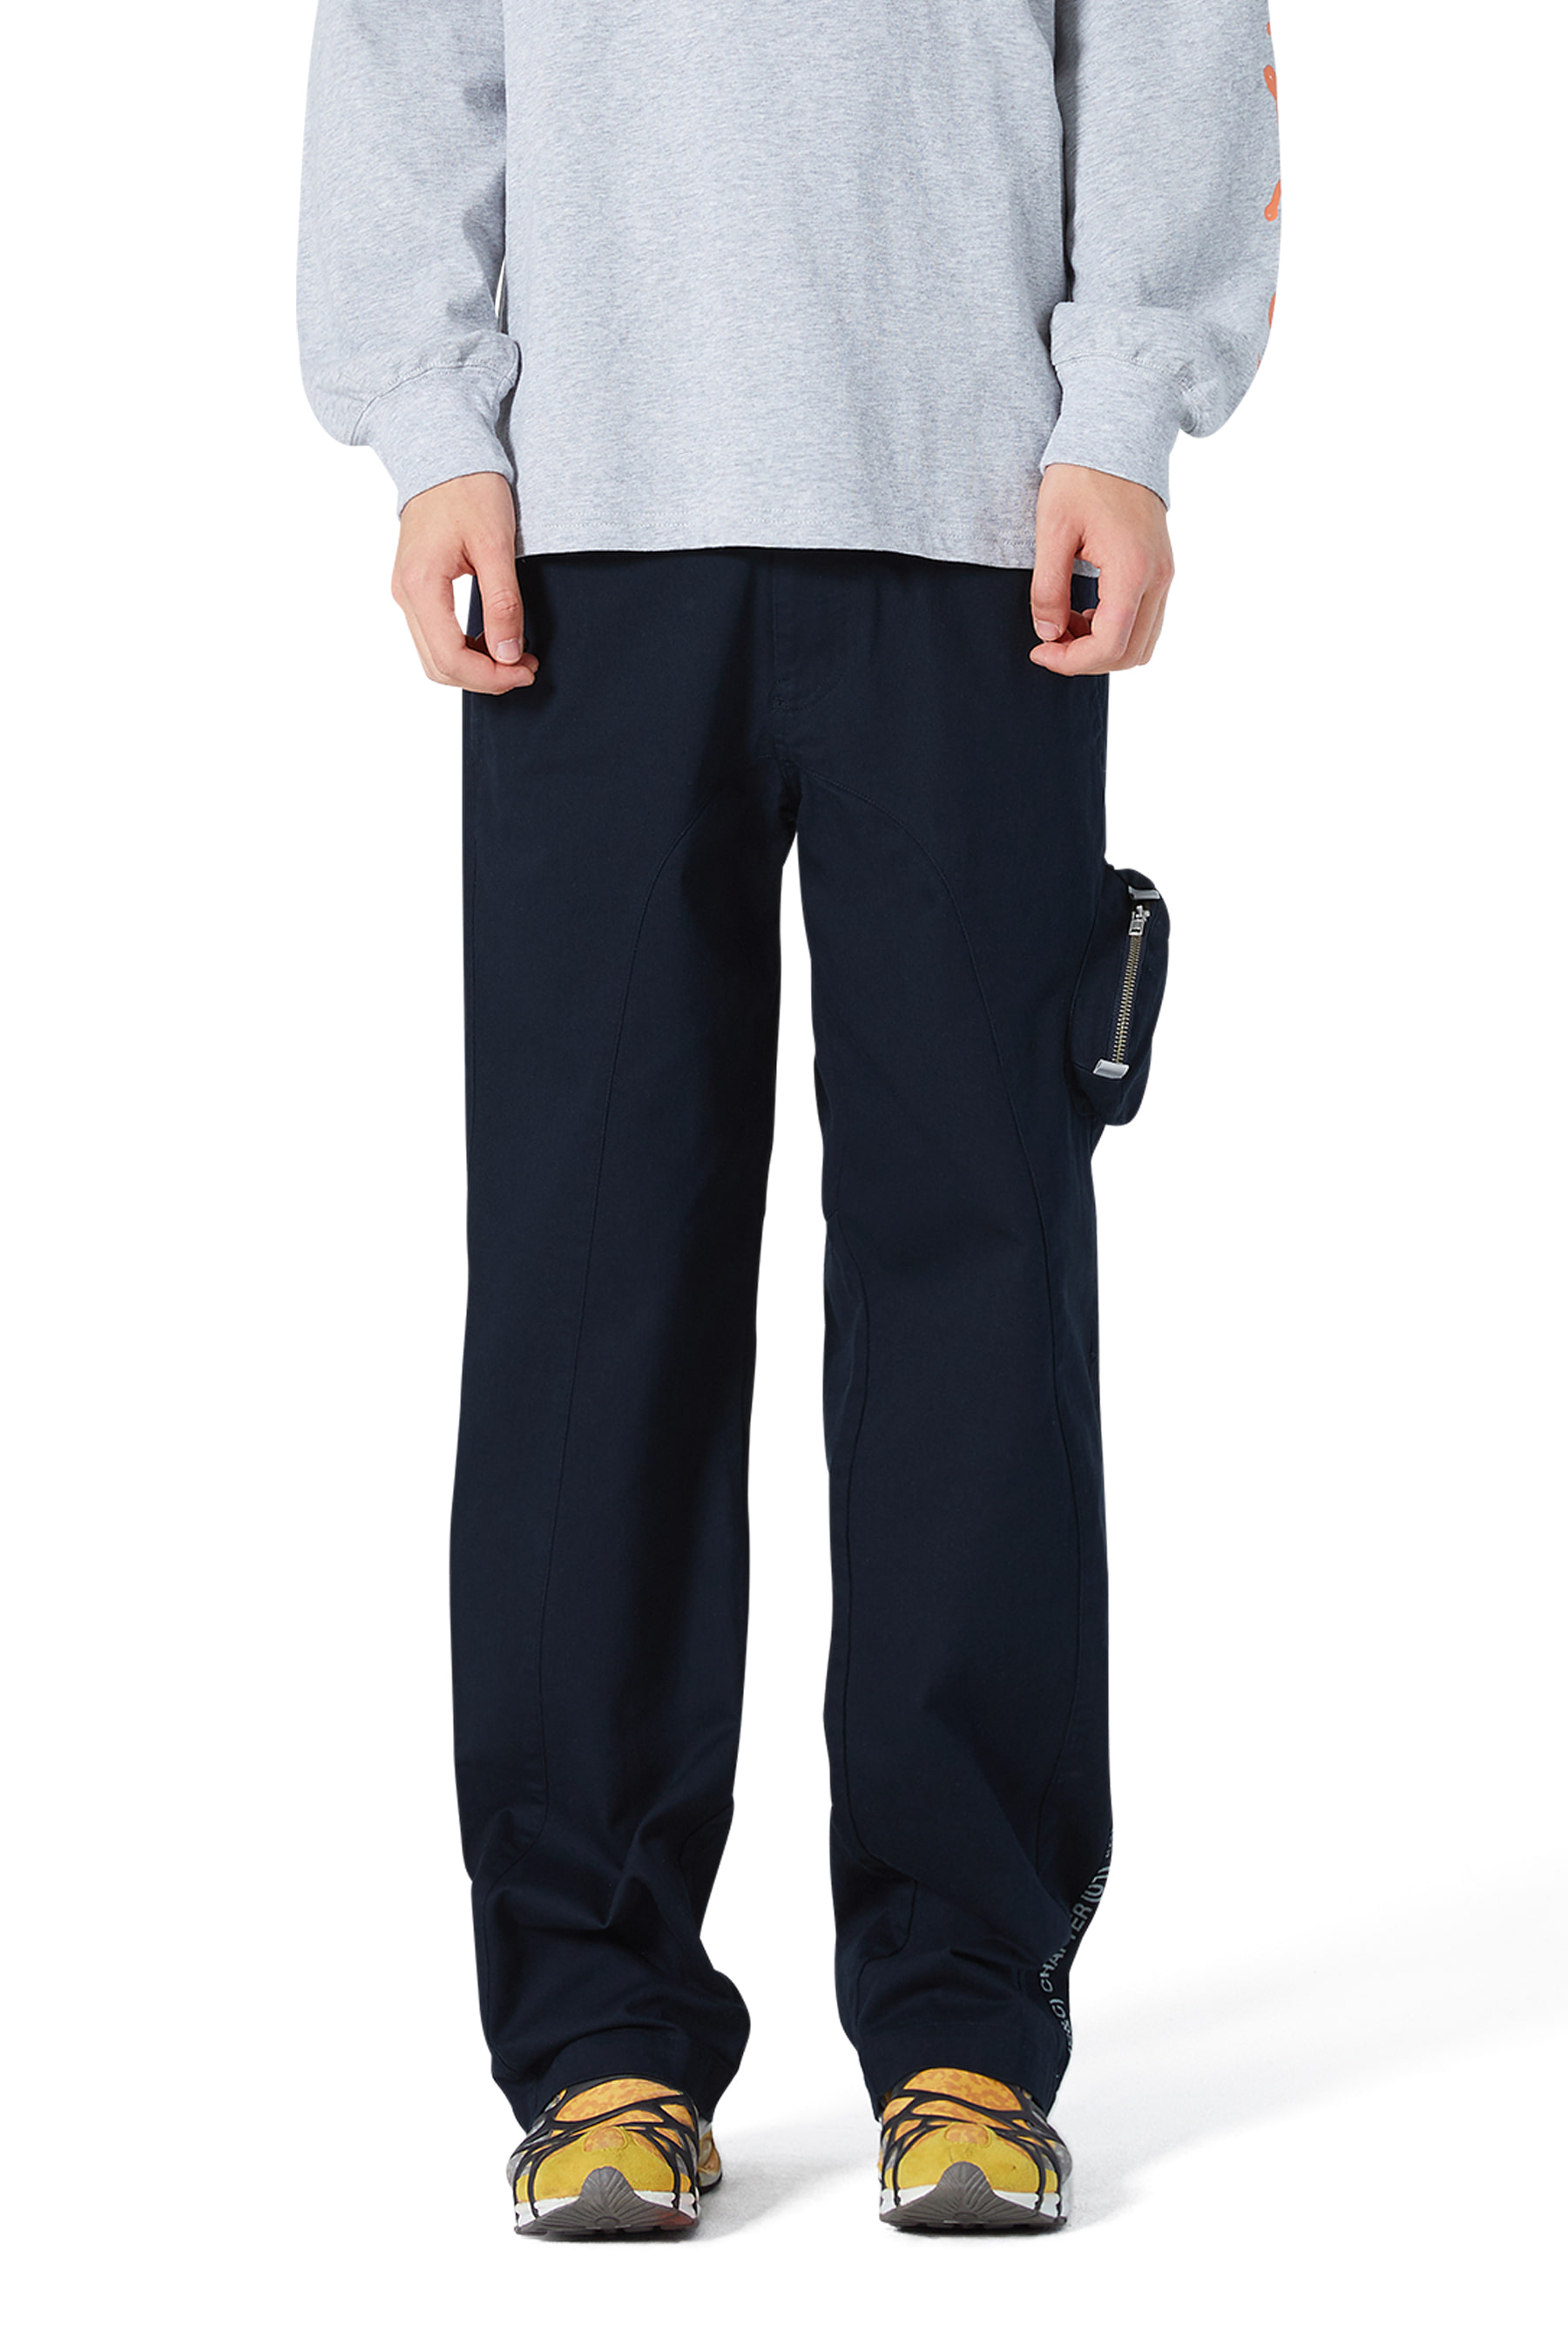 Y.E.S Engineer Pants Navy